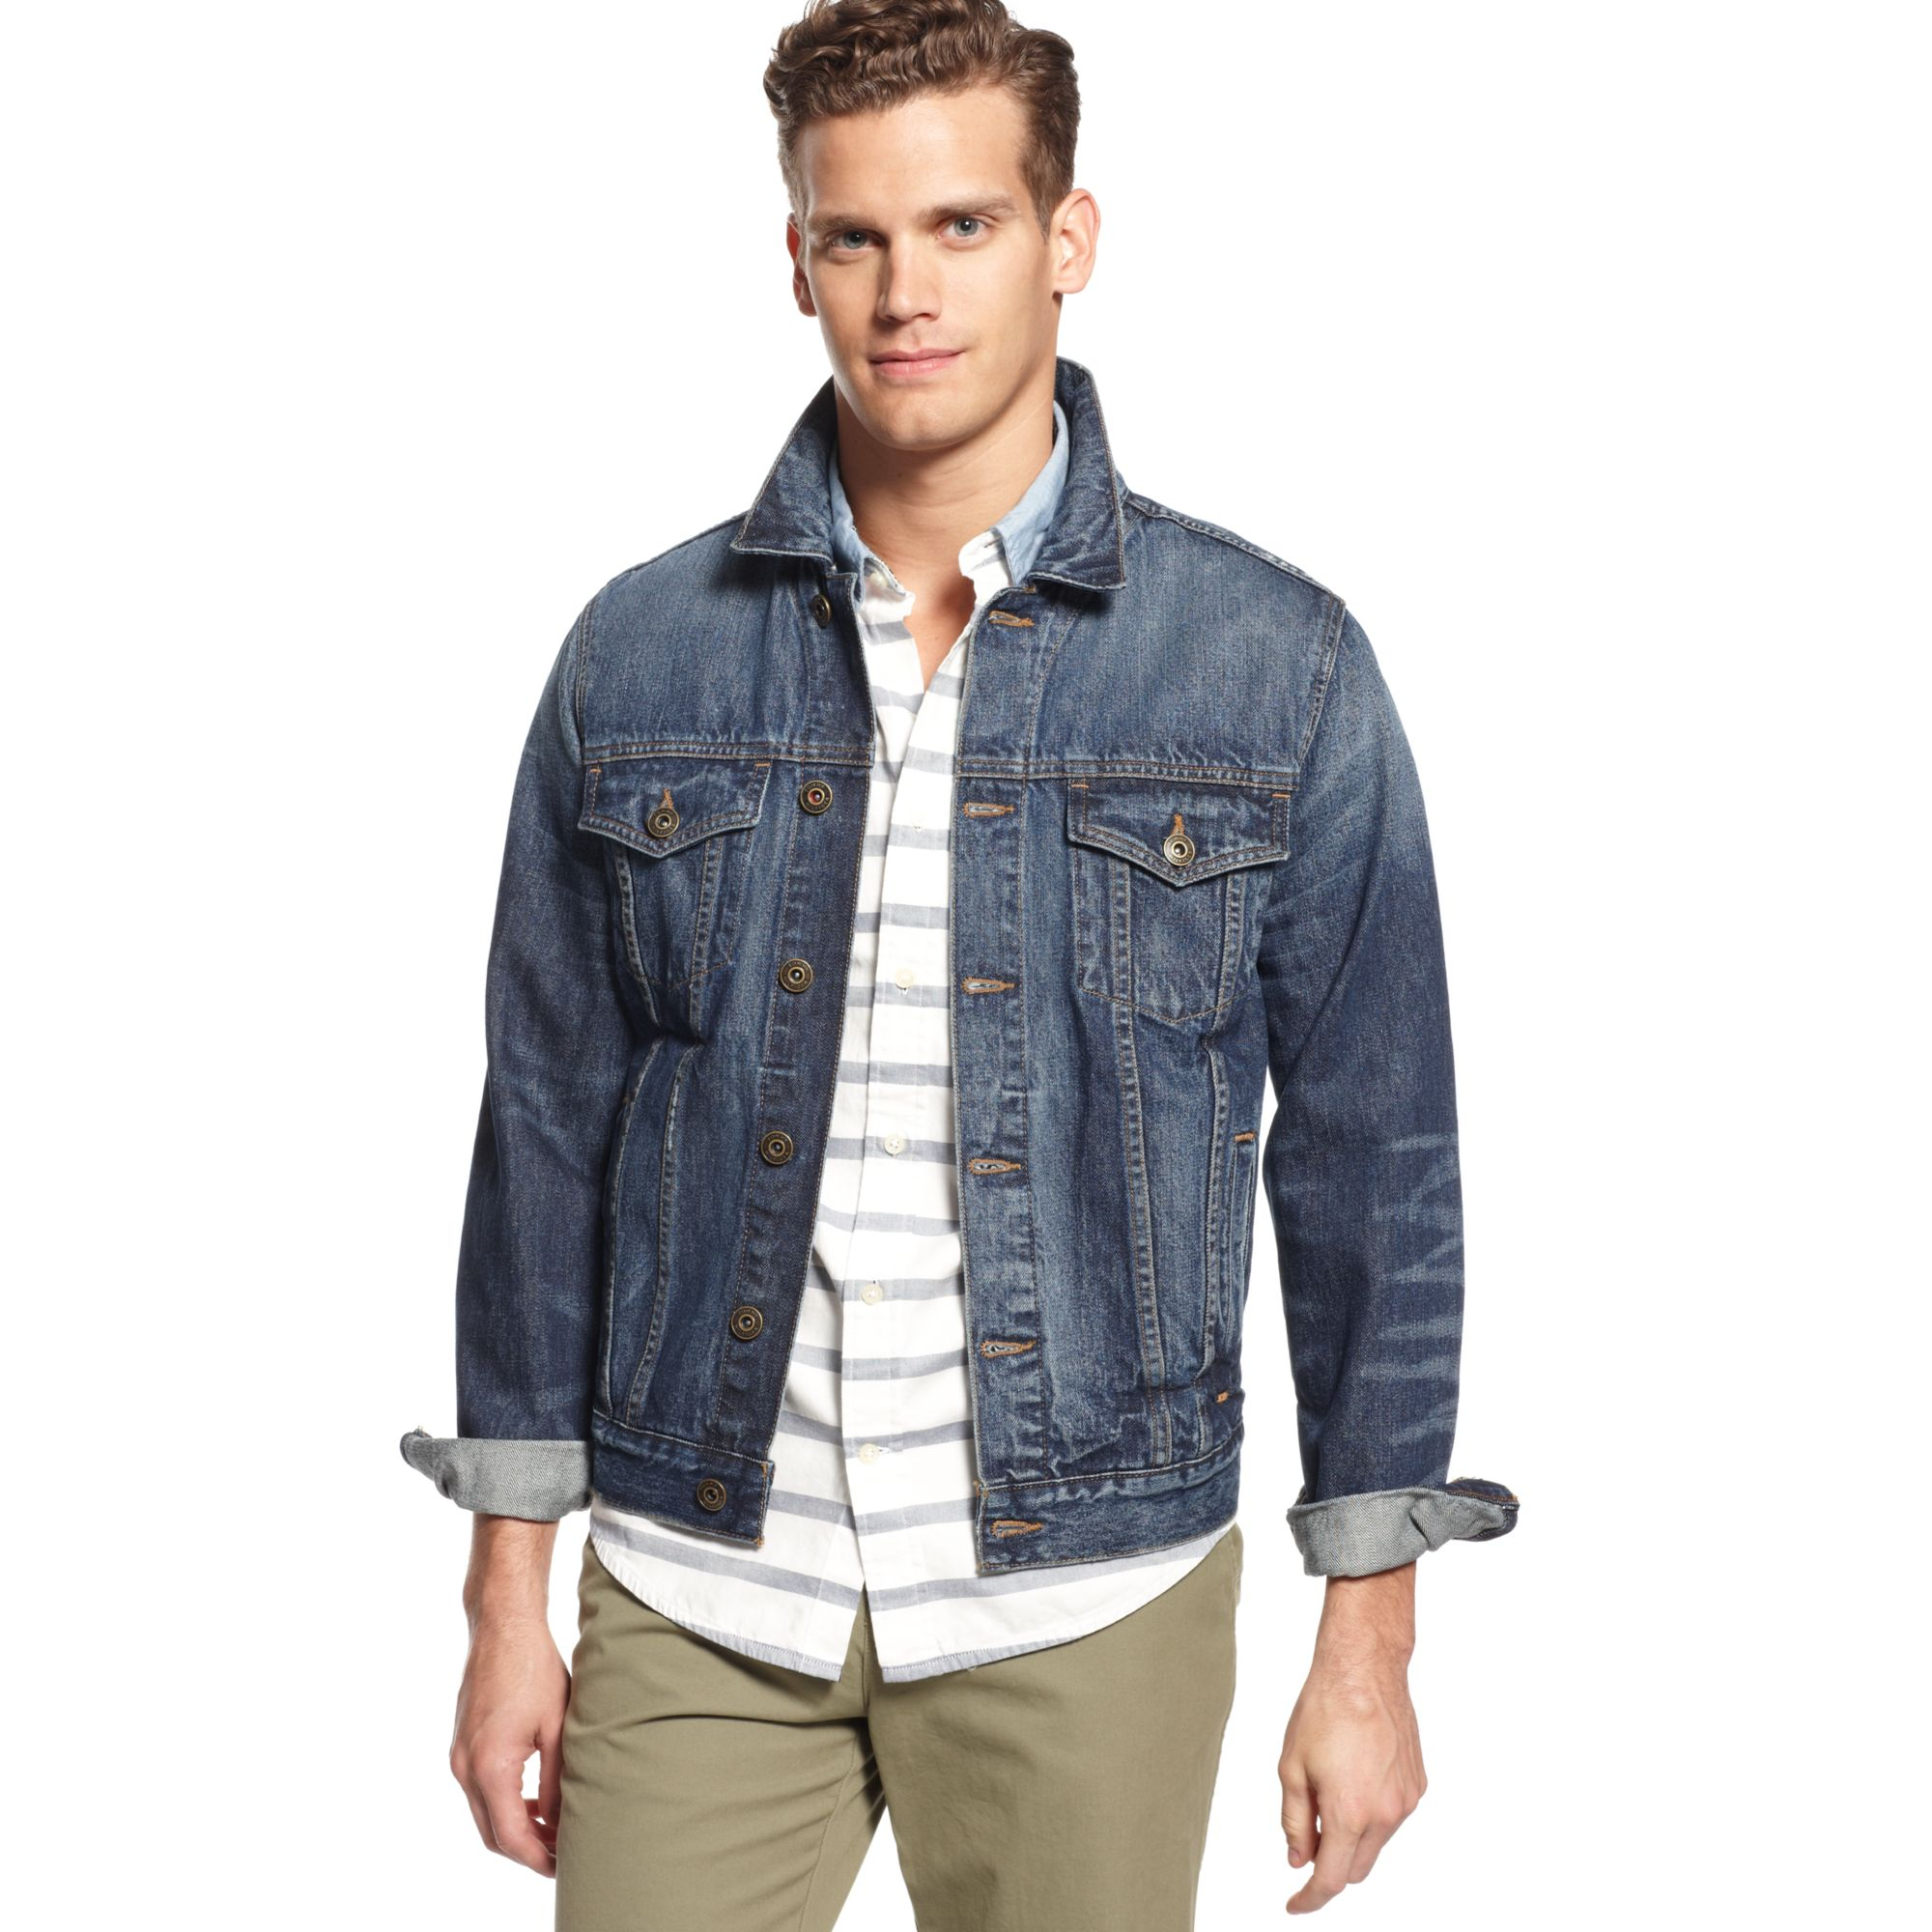 Lyst - Tommy Hilfiger Denim Patchwork Flag Jacket in Blue for Men